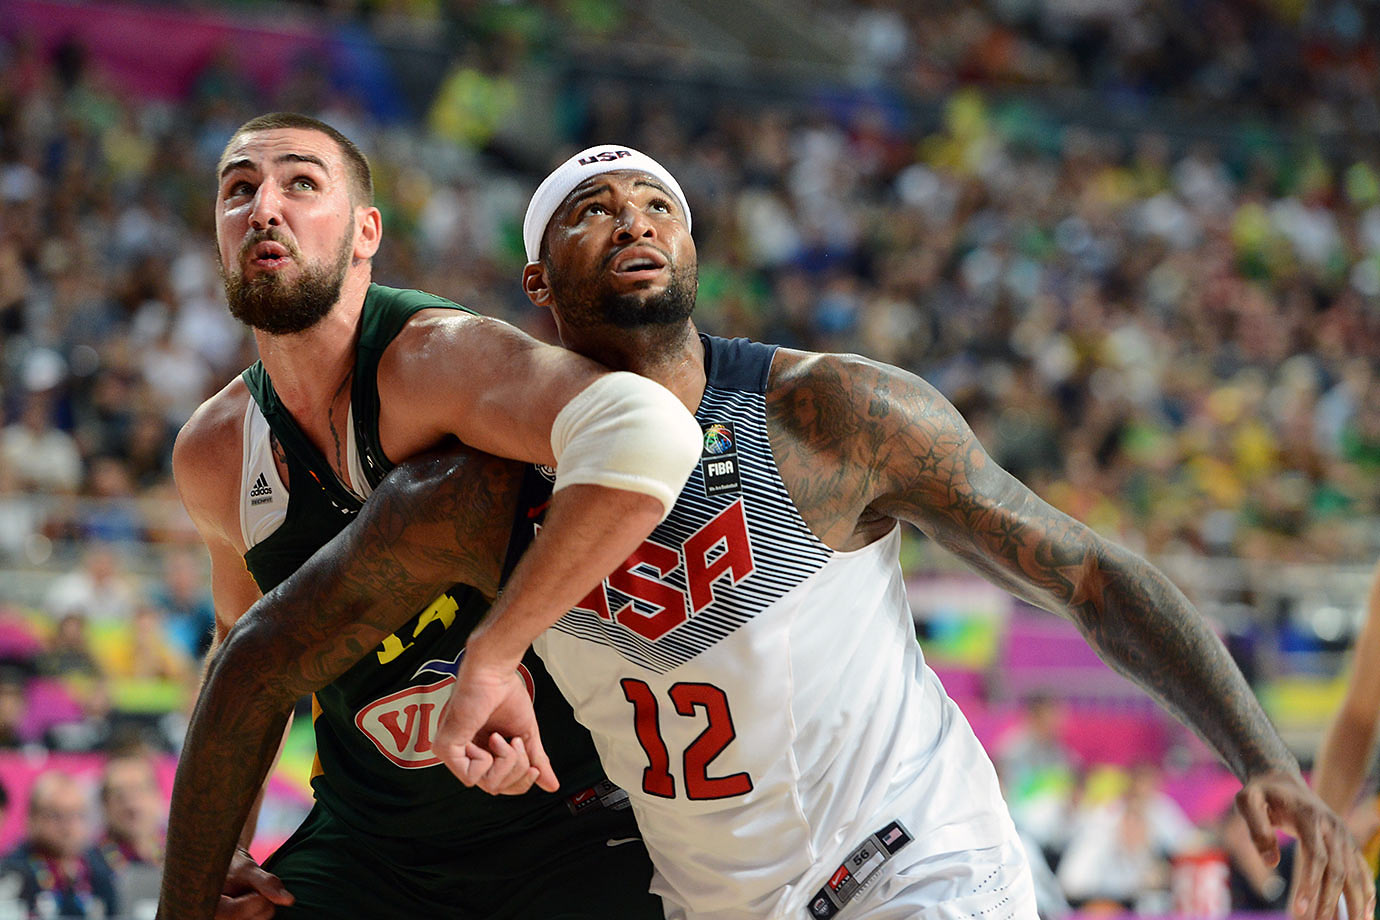 One major downside to Spain flaming out in the quarterfinals of the 2014 World Cup: Colangelo and company were robbed of the opportunity to see how Cousins fared head-to-head against bigs Marc and Pau Gasol, and to examine how Sacramento's famously moody All-Star held up under the extra scrutiny attention the matchup surely would have generated. Regardless, the 24-year-old Cousins is a natural pick to make the trek to Rio given his overall talent level and his comfort tracking his man from the rim to the elbow. SI.com would select Cousins with one of its final two roster spots unless Dwight Howard proves to be 100% healthy and back to Defensive Player of the Year type form.